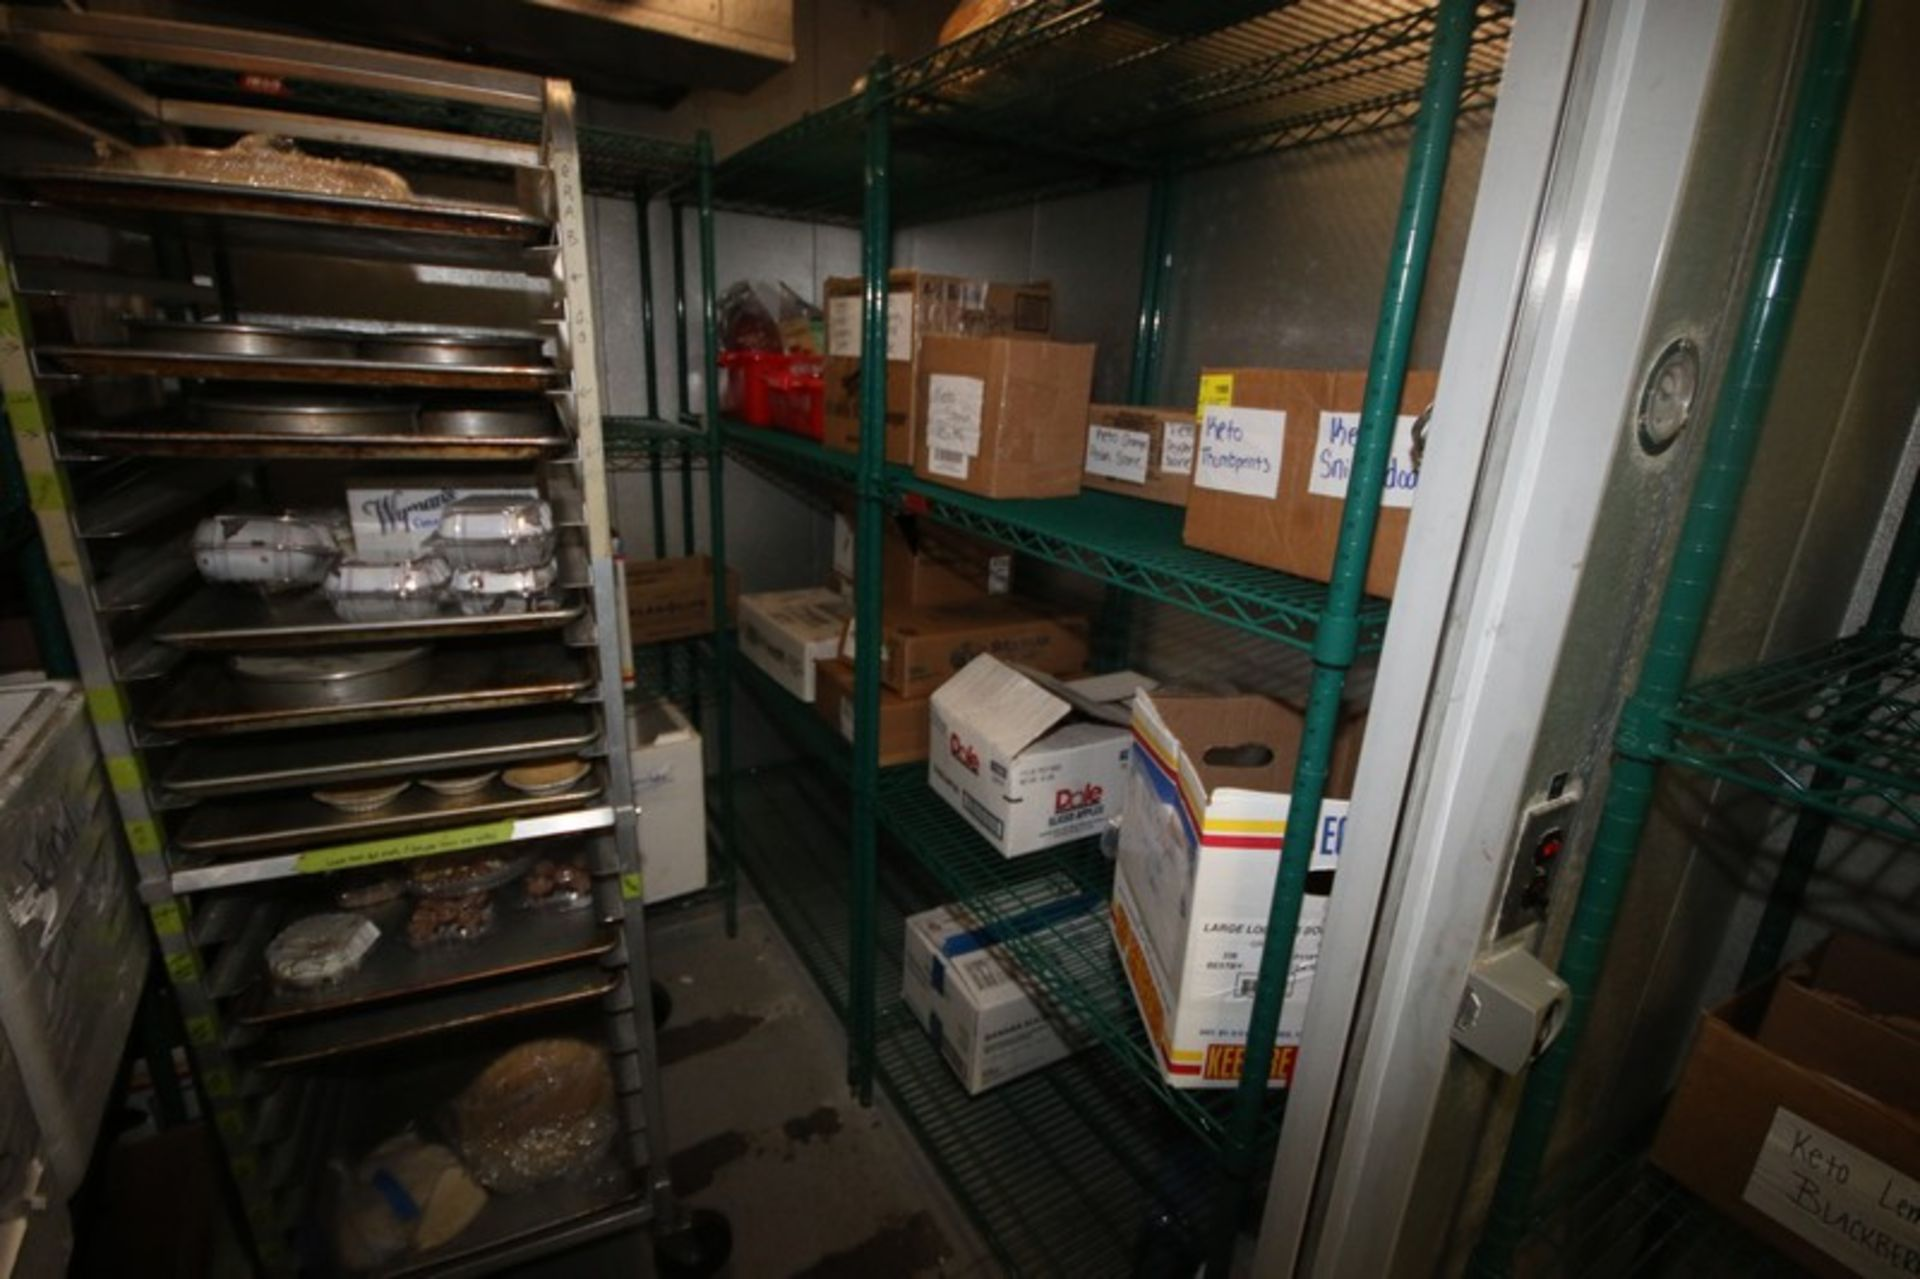 Harford Dual Compartment Walk-In Cooler & Freezer, S/N 410021576 & 410021576, Compartment Sizes: - Image 11 of 18